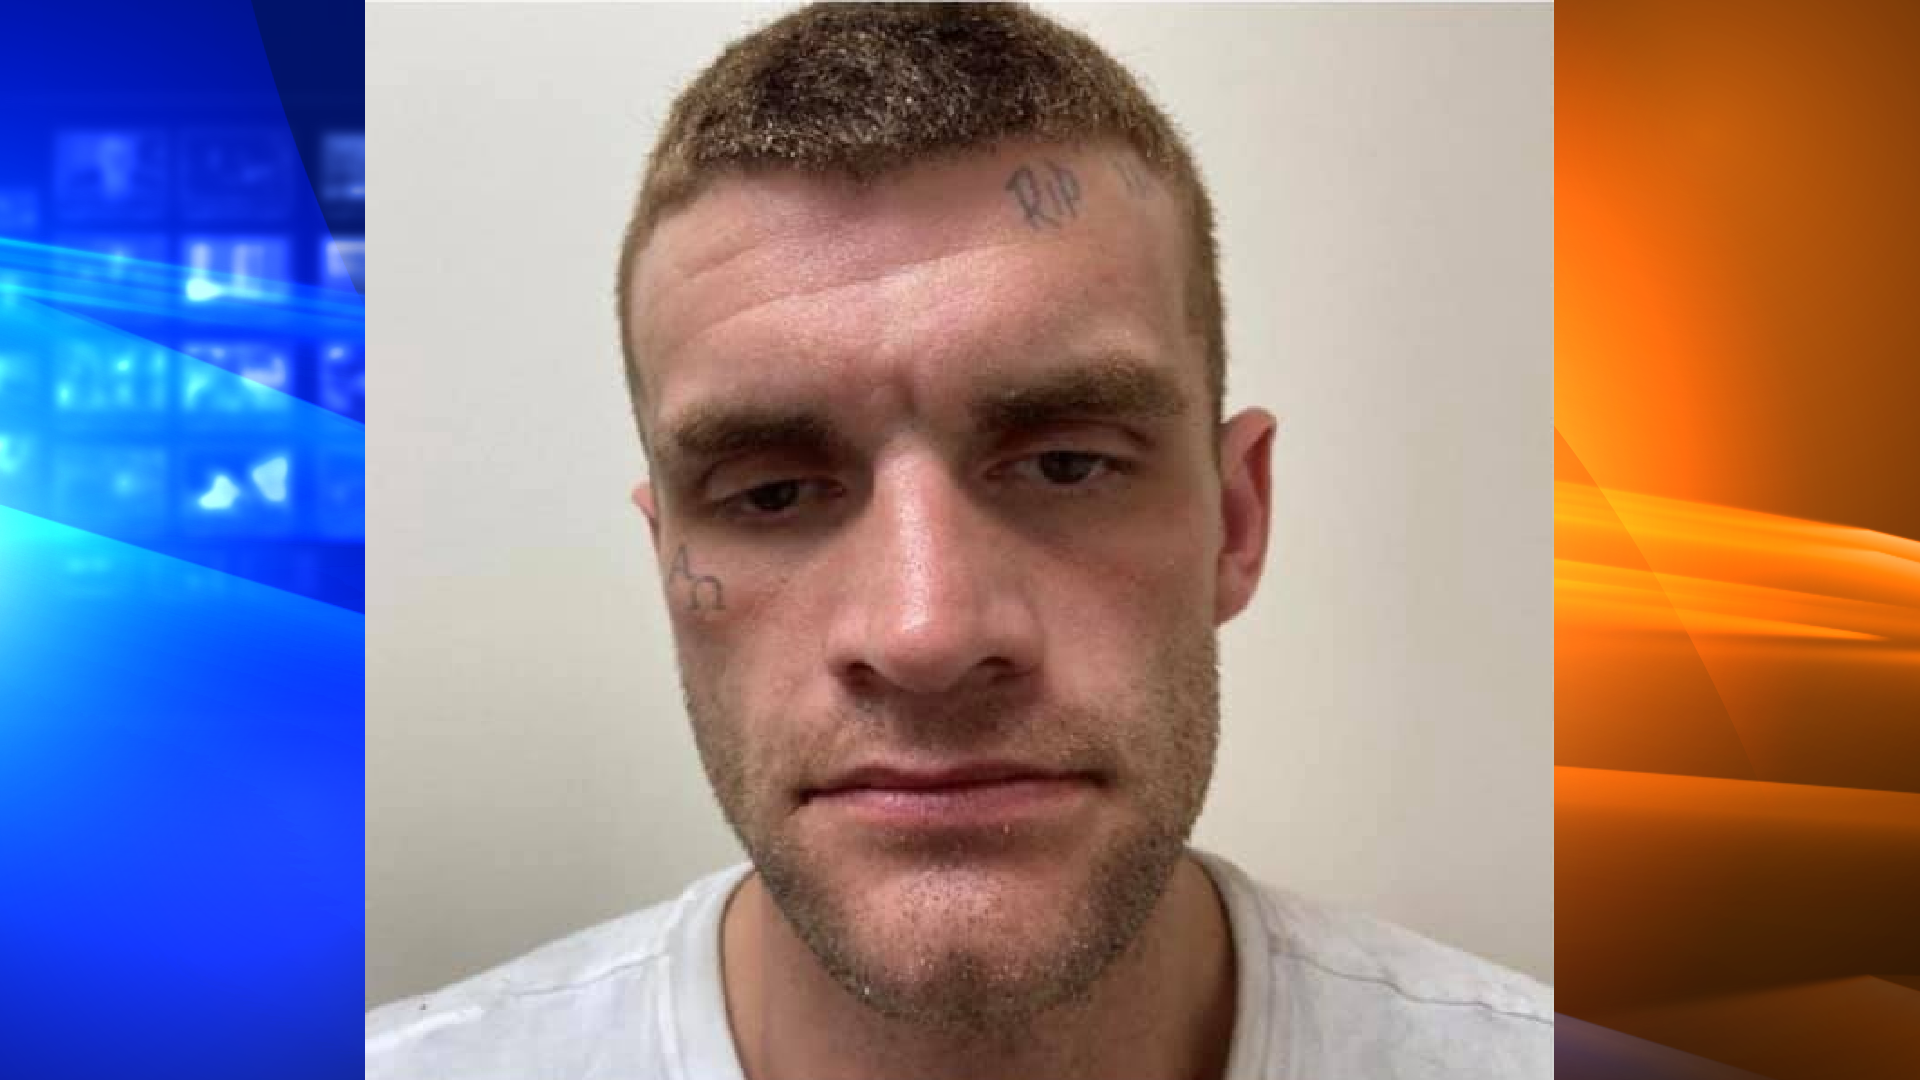 Beau Joseph Paepke is seen in a photo released by the Santa Cruz Police department July 2, 2021.